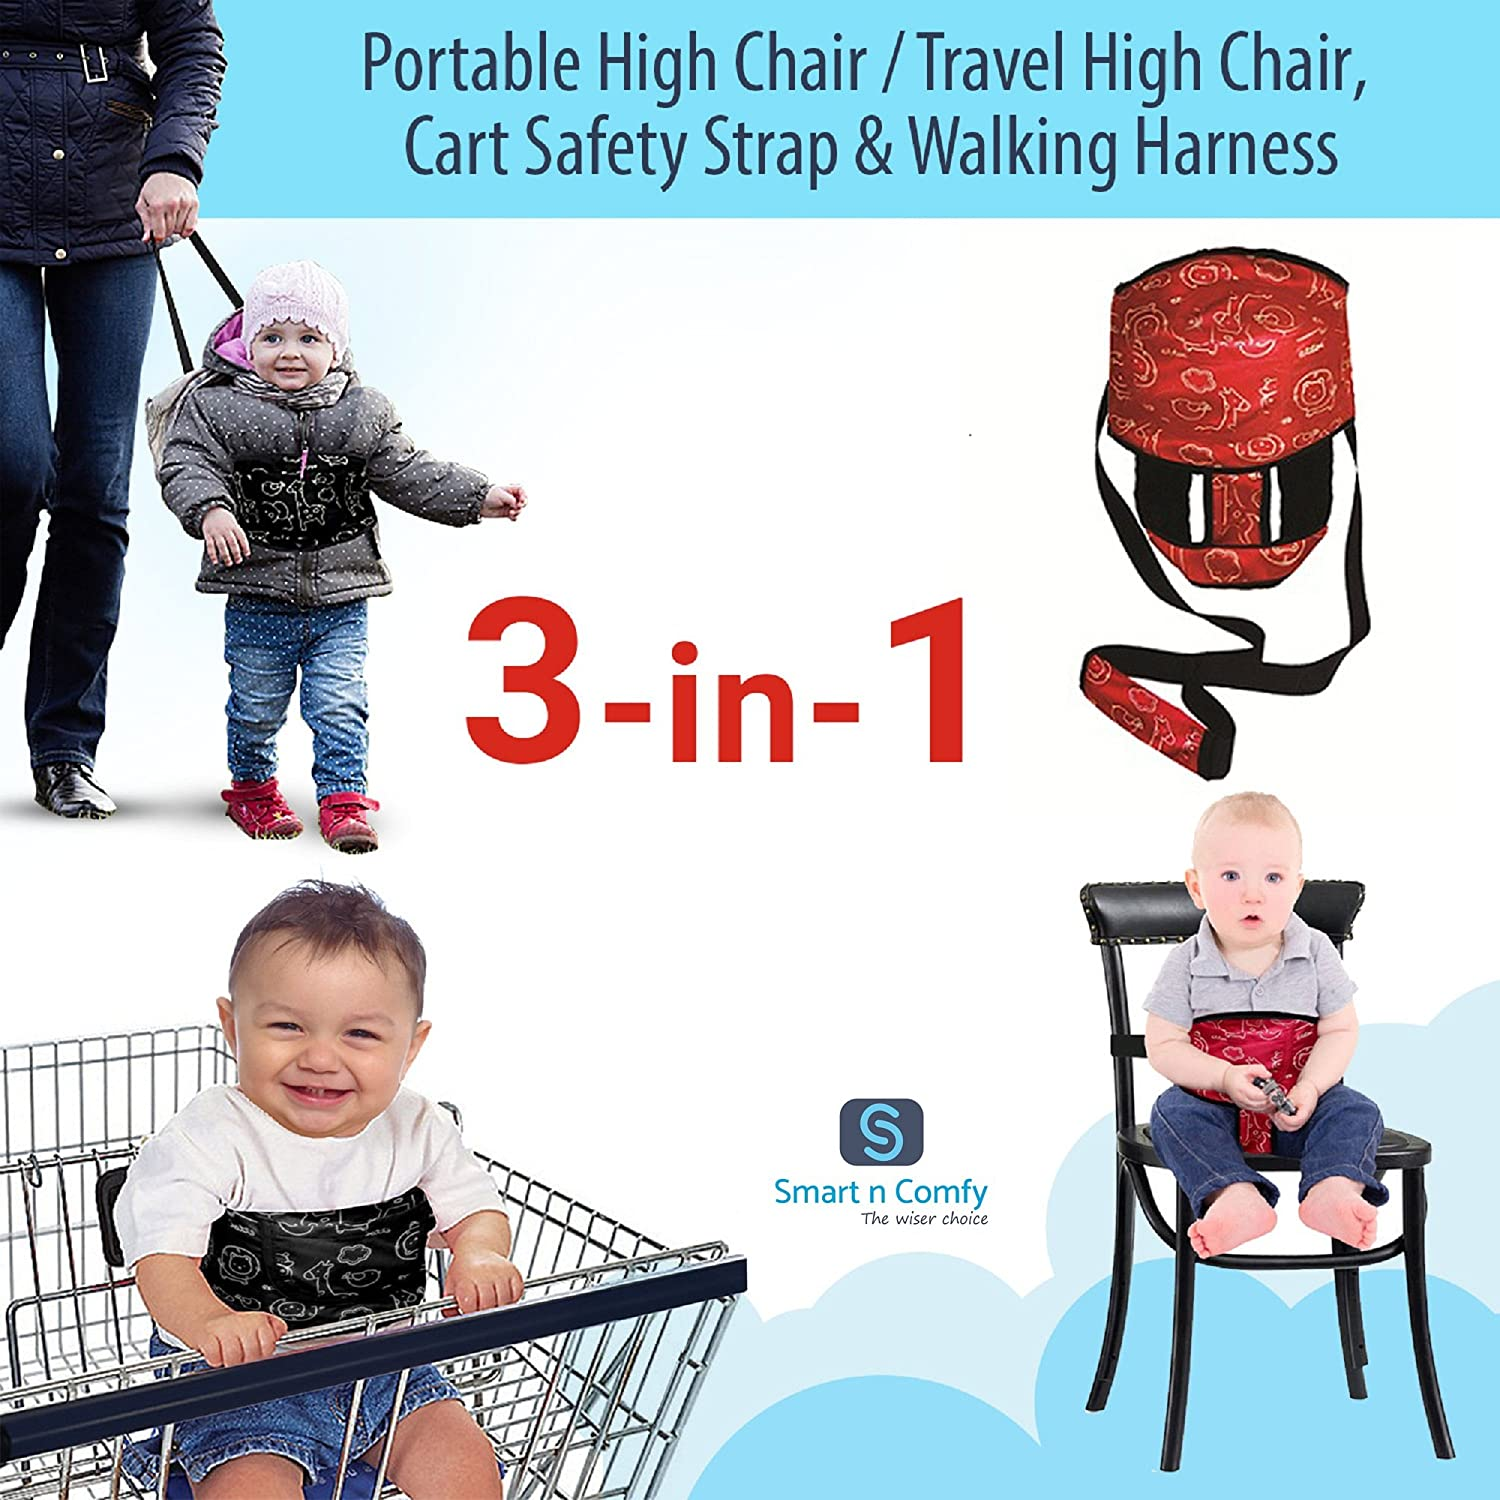 Smart N Comfy 3-in-1 Travel High Chair + Portable High Chair + Toddler Safety Harness + Shopping Cart Safety Strap (Black) AMZ Team Business